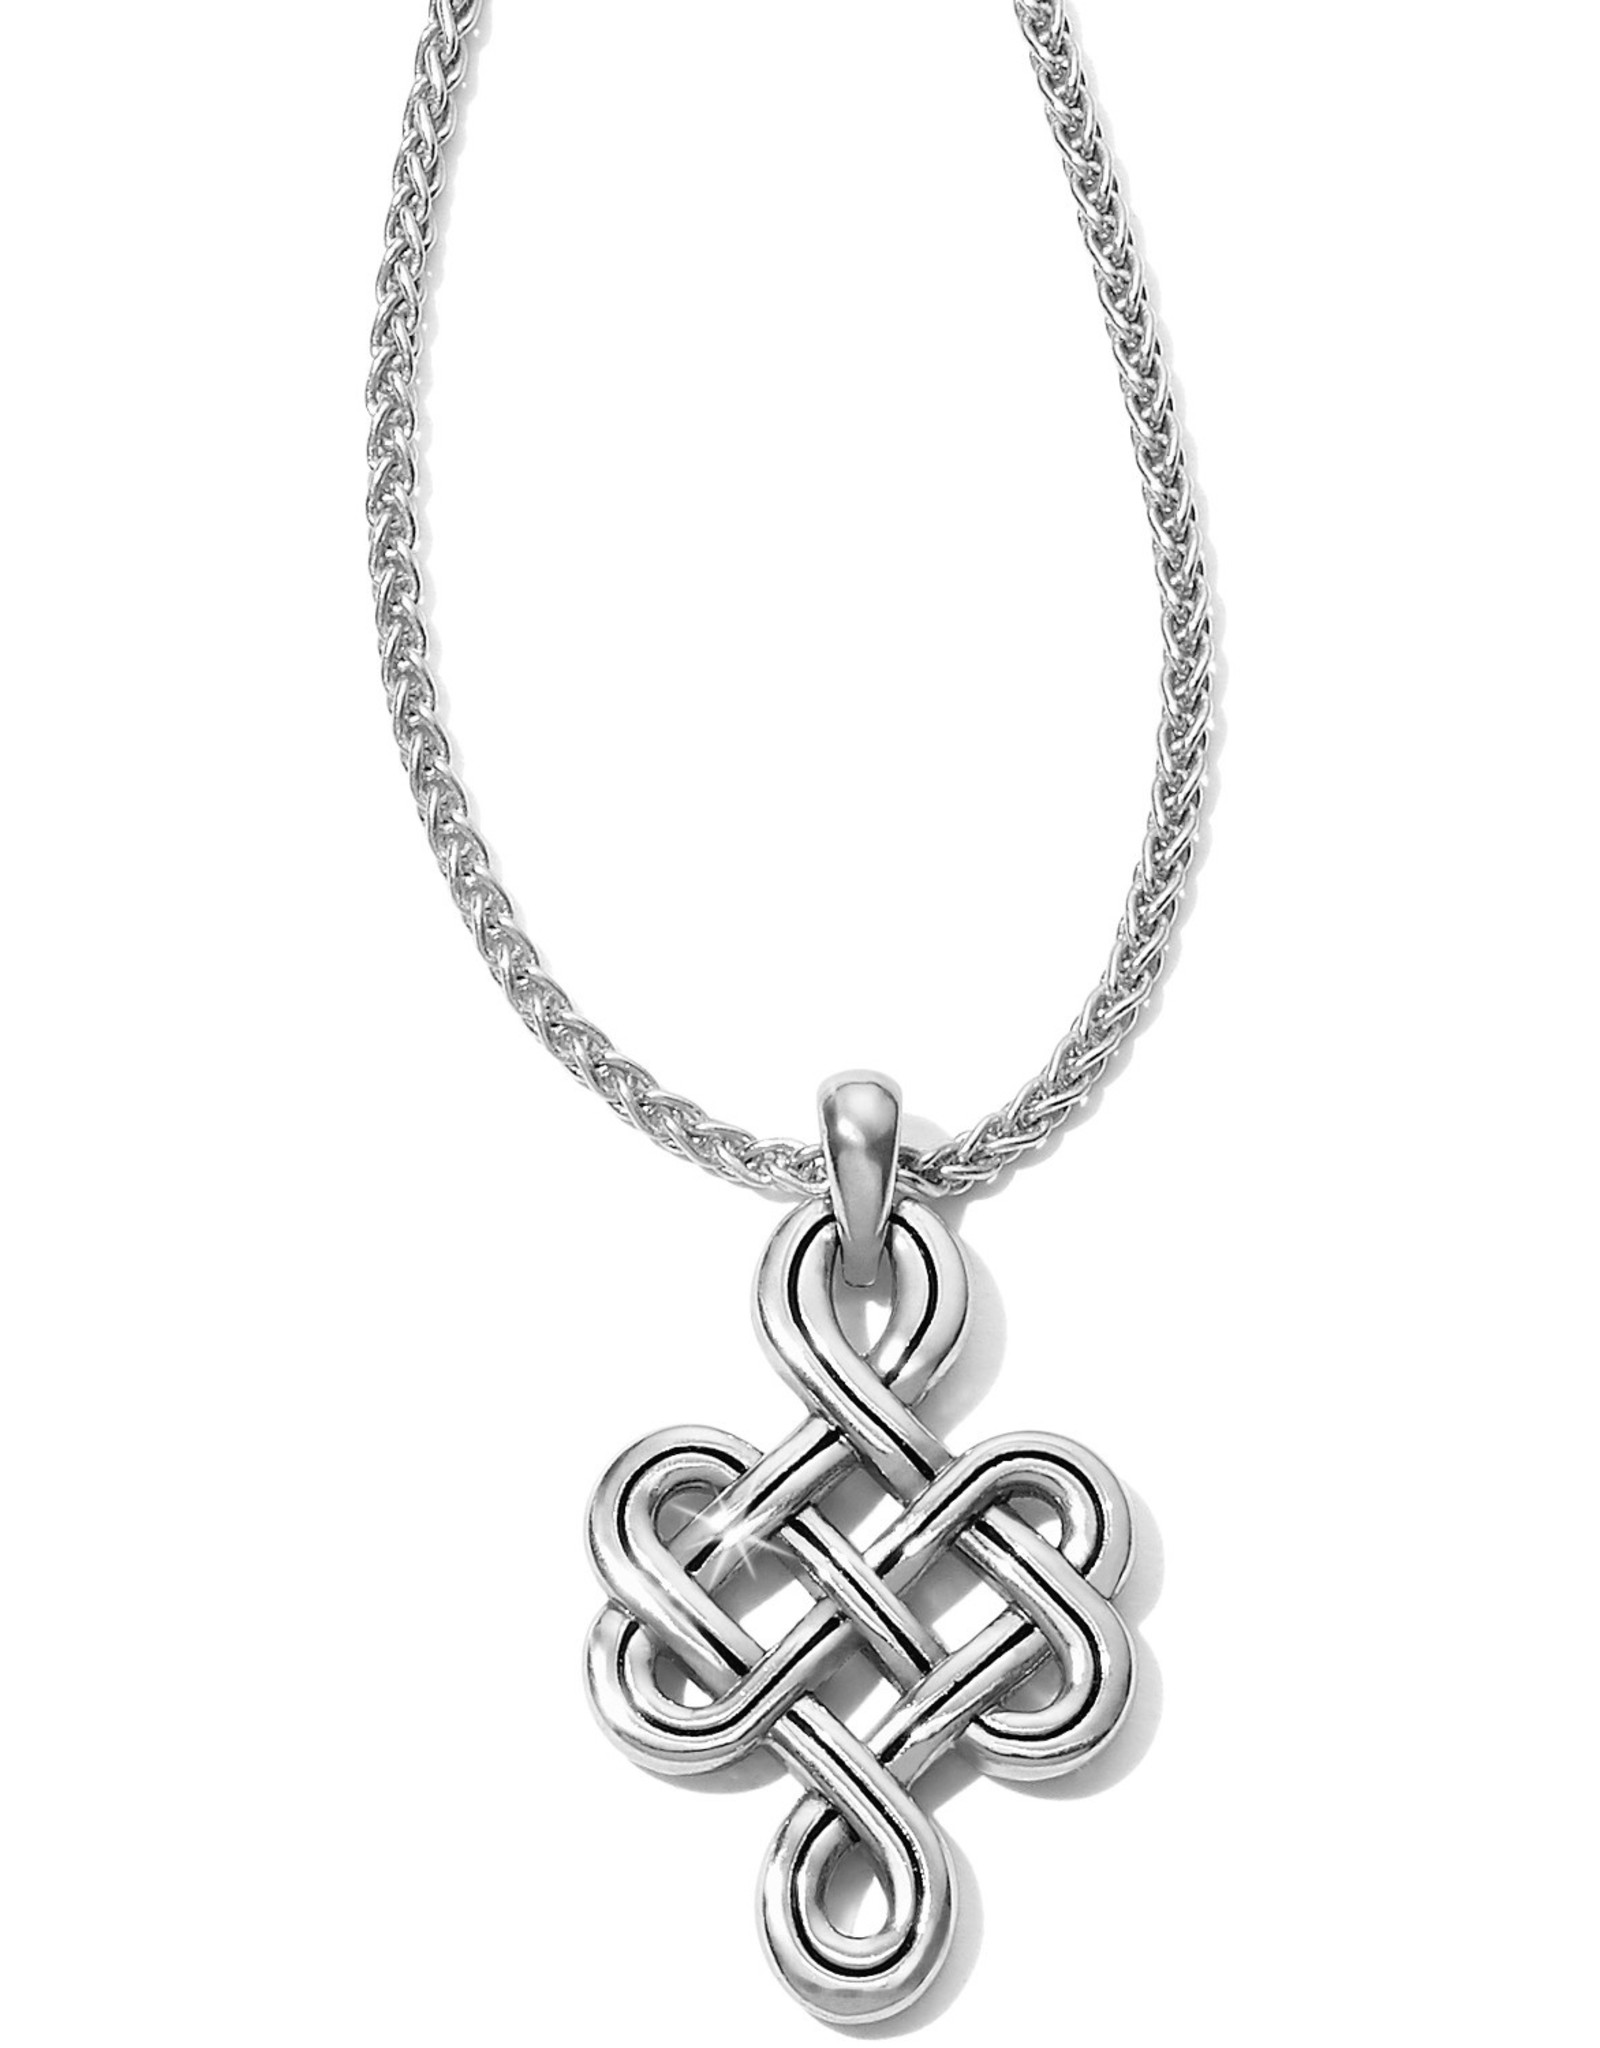 Brighton Brighton Necklace Interlok Endless Knot Petite